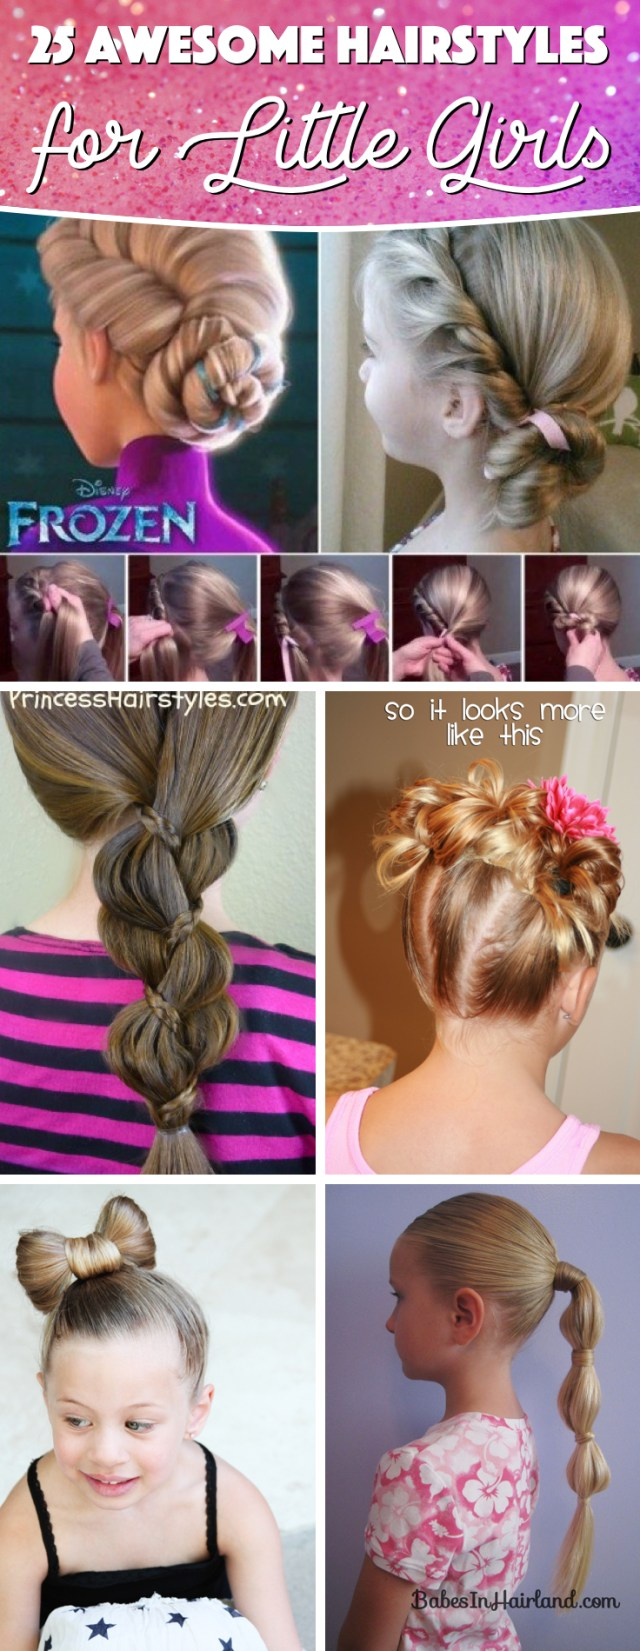 25 awesome hairstyles for little girls making them look